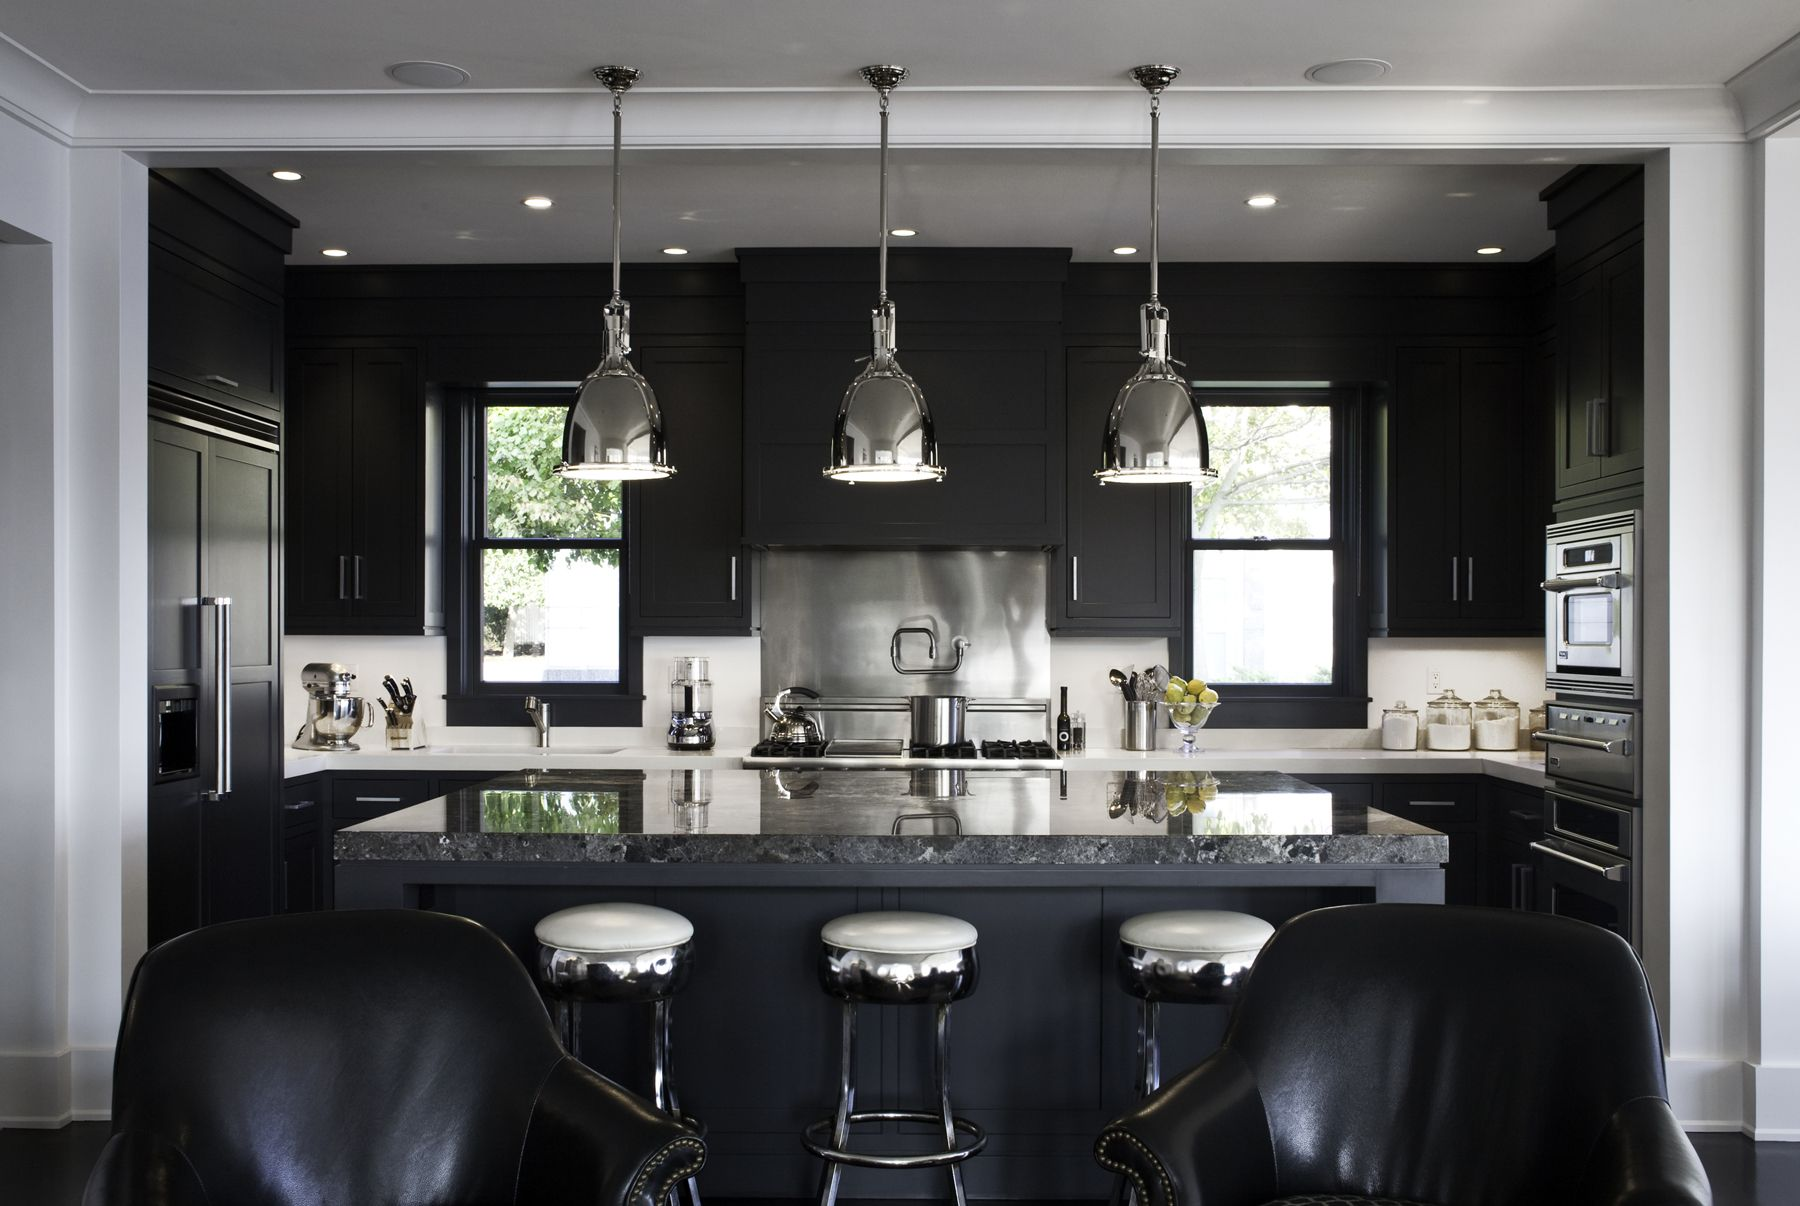 Kitchen paint colors with black cabinets - 30 Best Black Kitchen Cabinets Kitchen Design Ideas With Black Cupboards